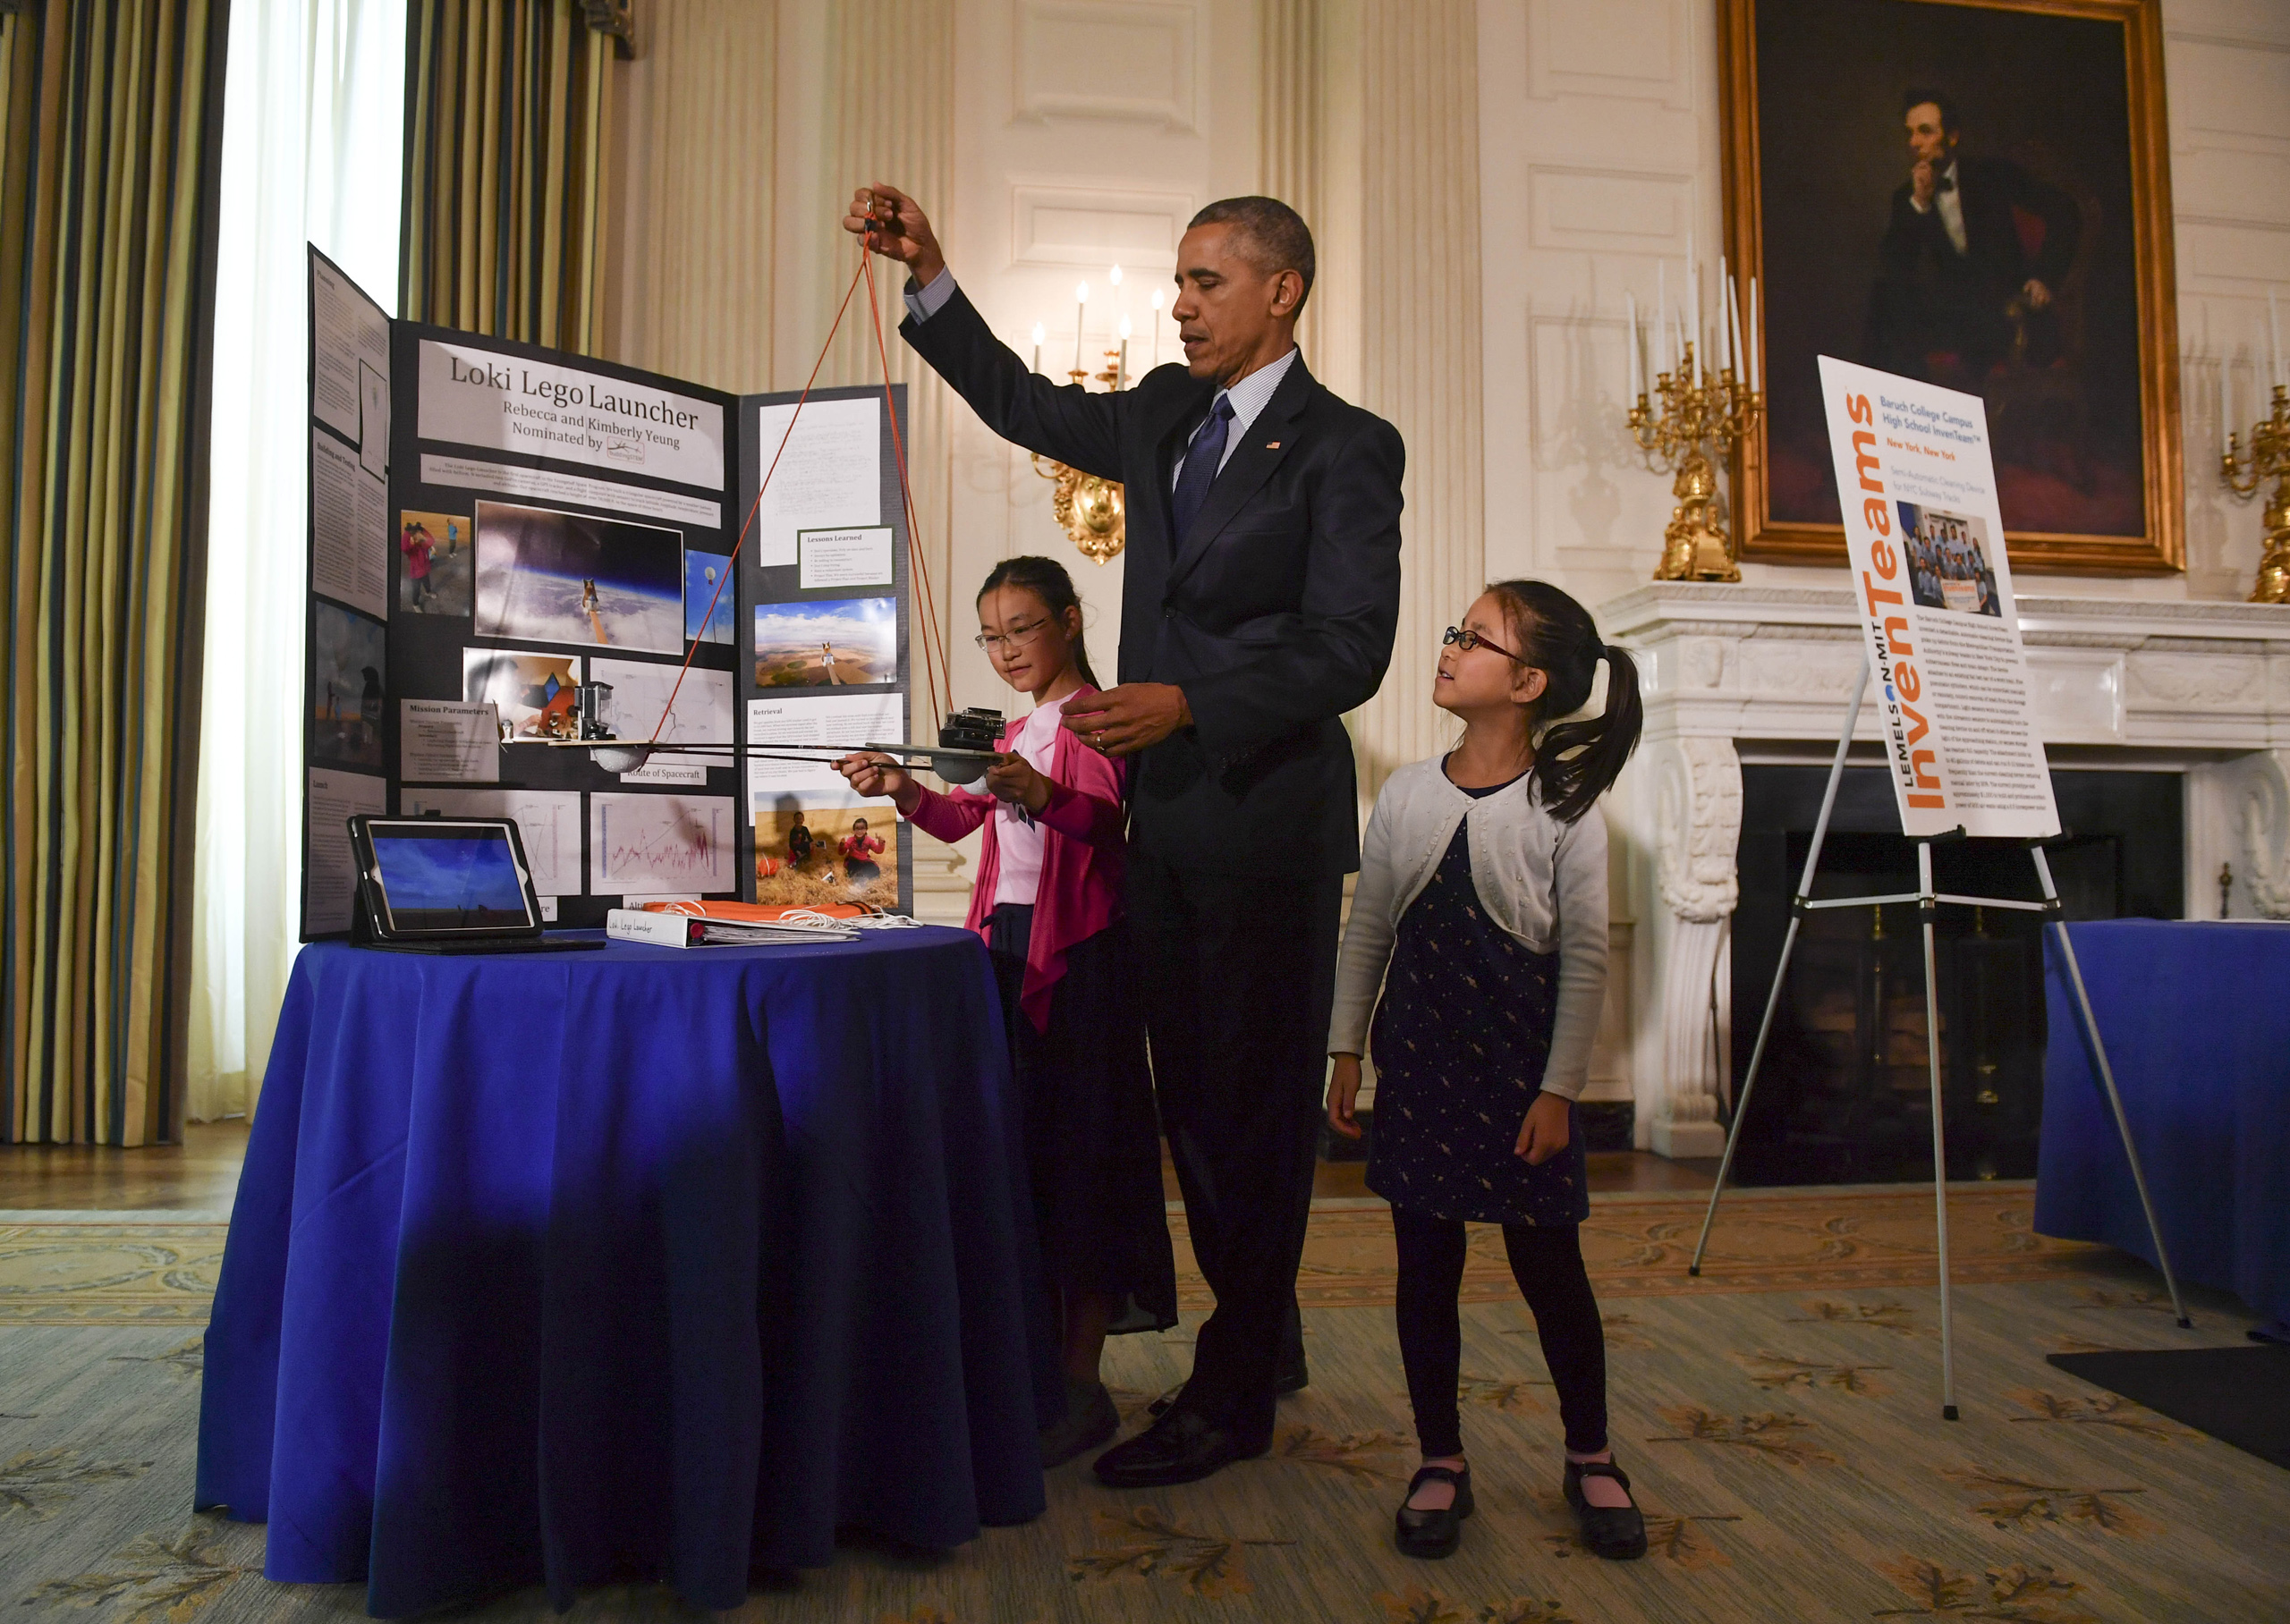 Sisters Kimberly, 9, right, and Rebecca Yeung, 11, of Seattle, WA., look on as President Barack Obama lifts their spacecraft science fair project during the sixth and final, annual White House Science Fair at The White House in Washington on April 13, 2016.